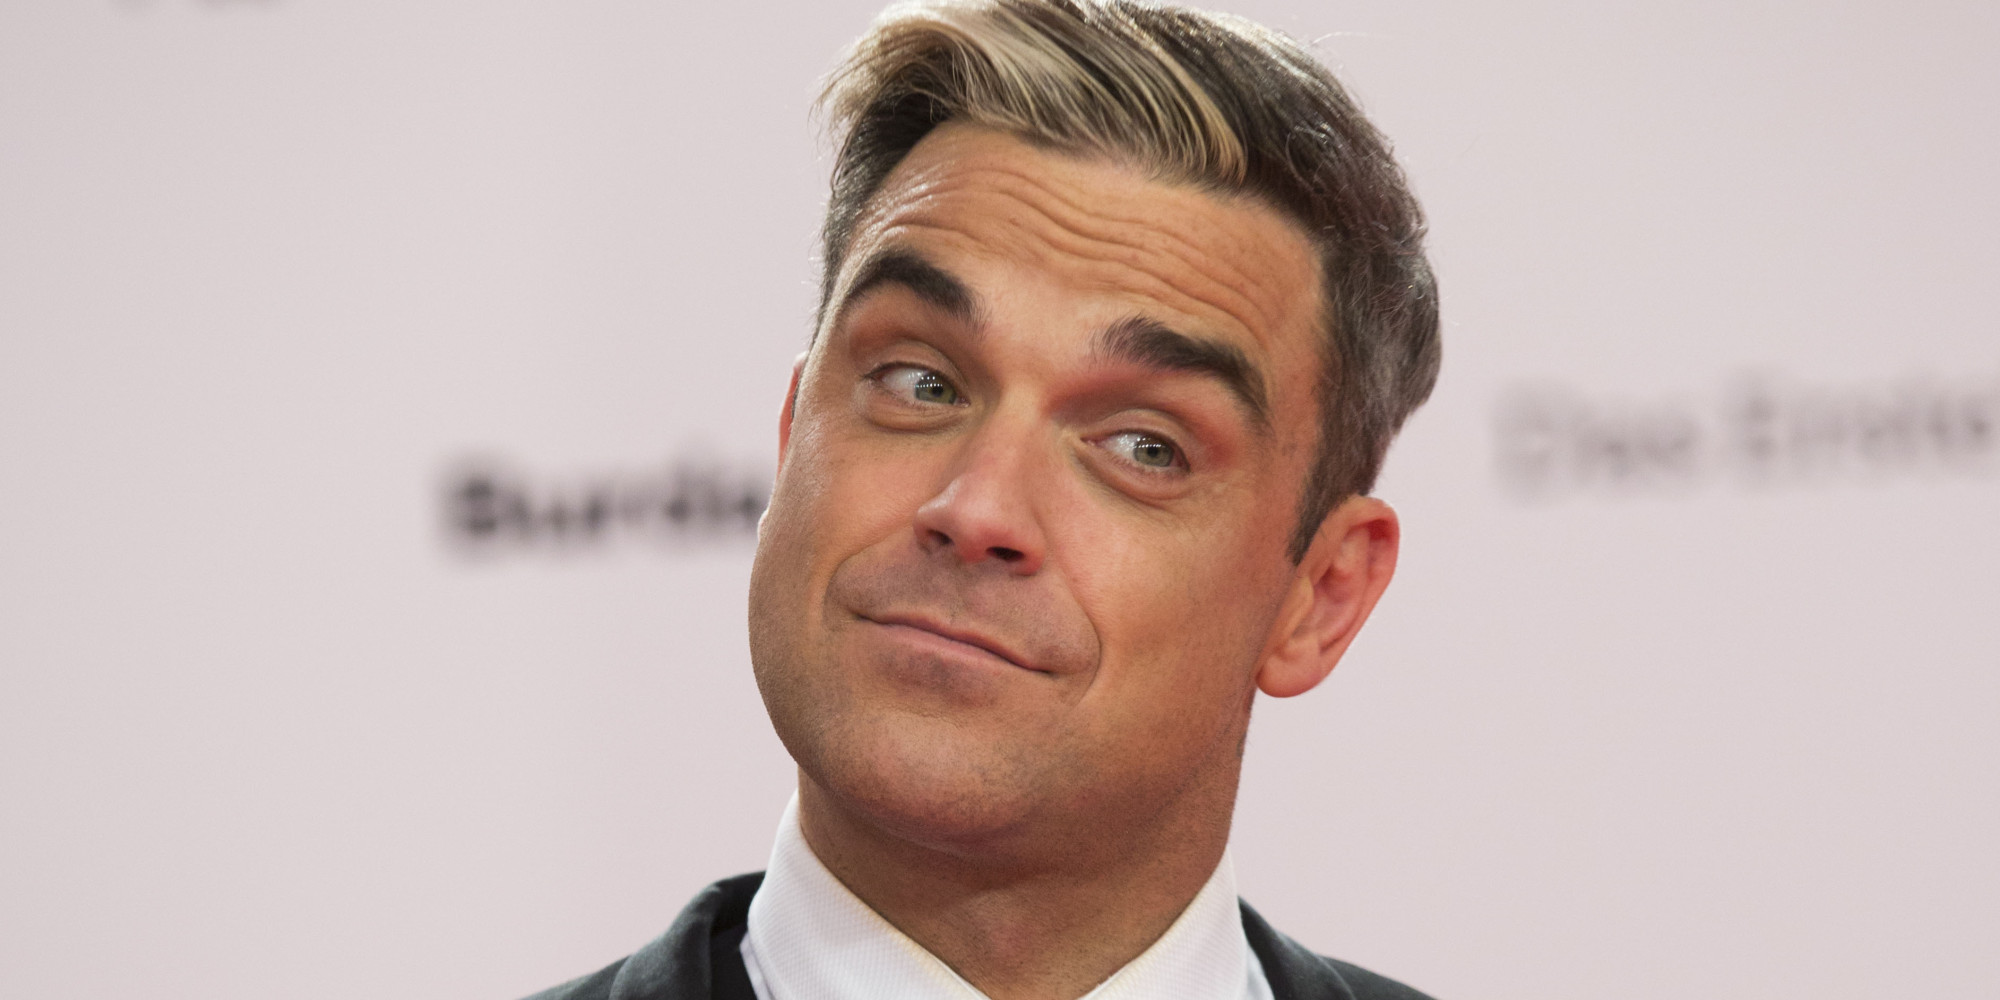 robbie williams - photo #36